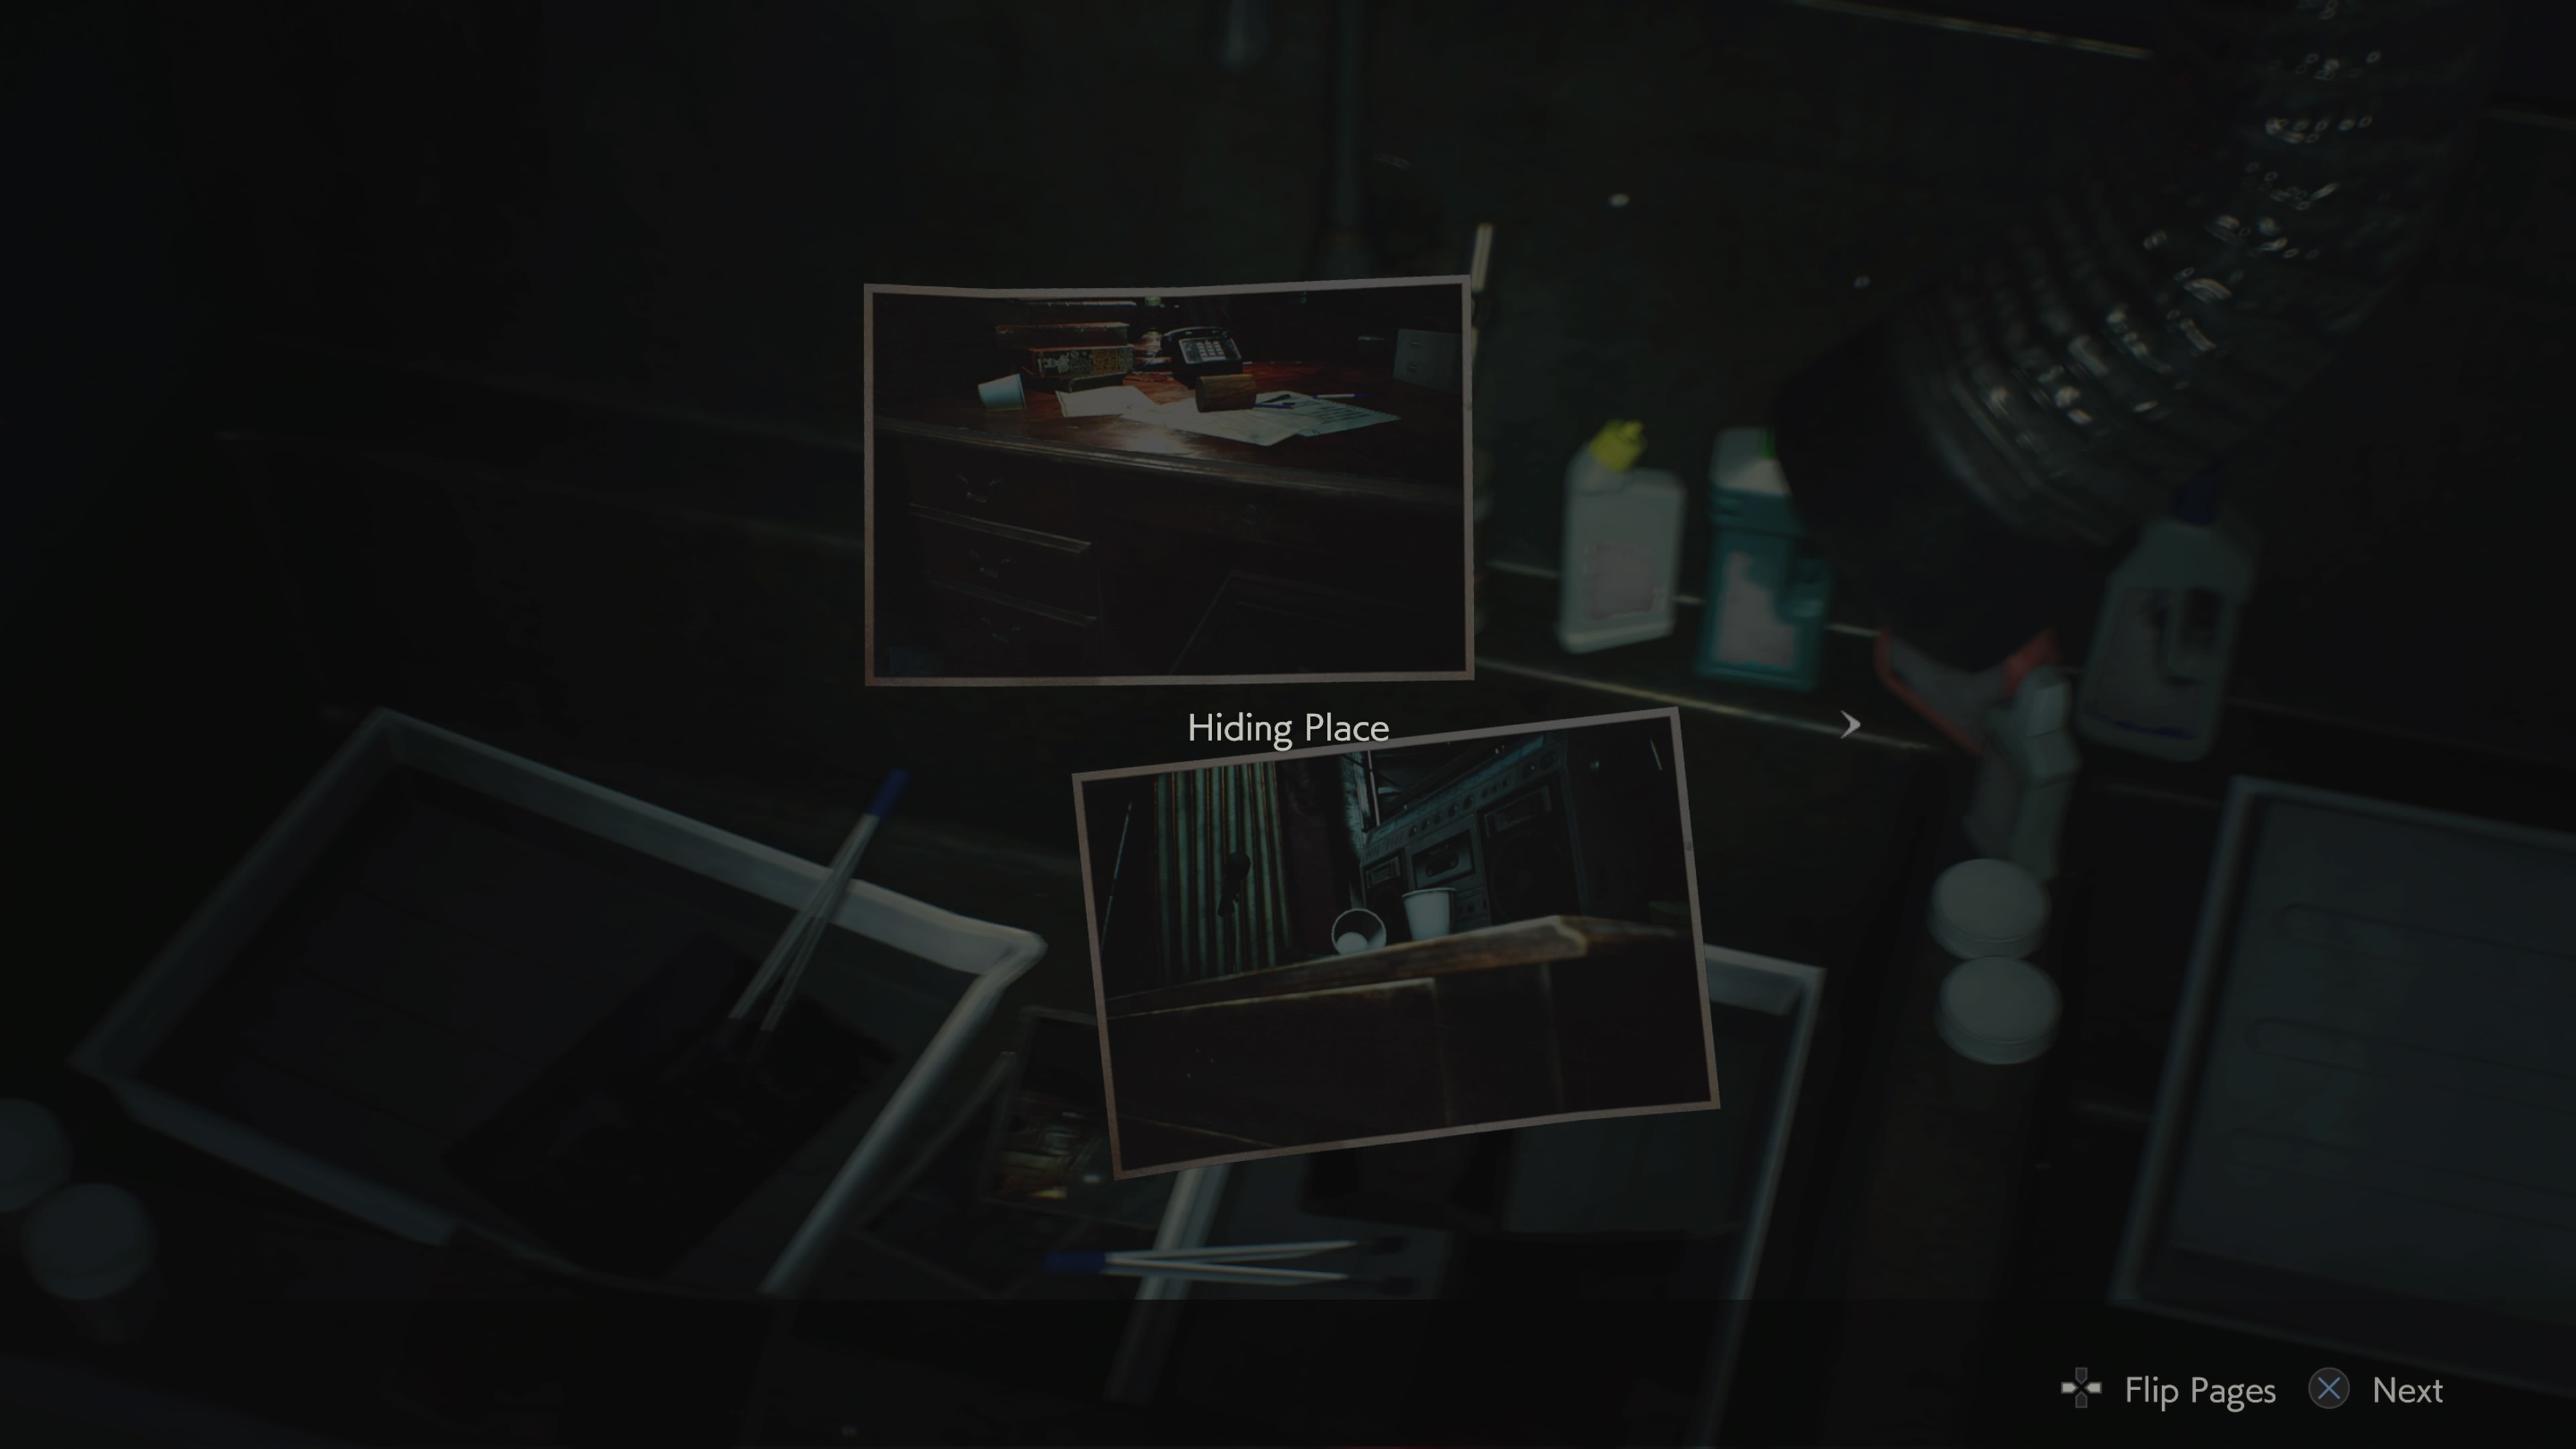 Hiding Place developed images for Resident Evil 2